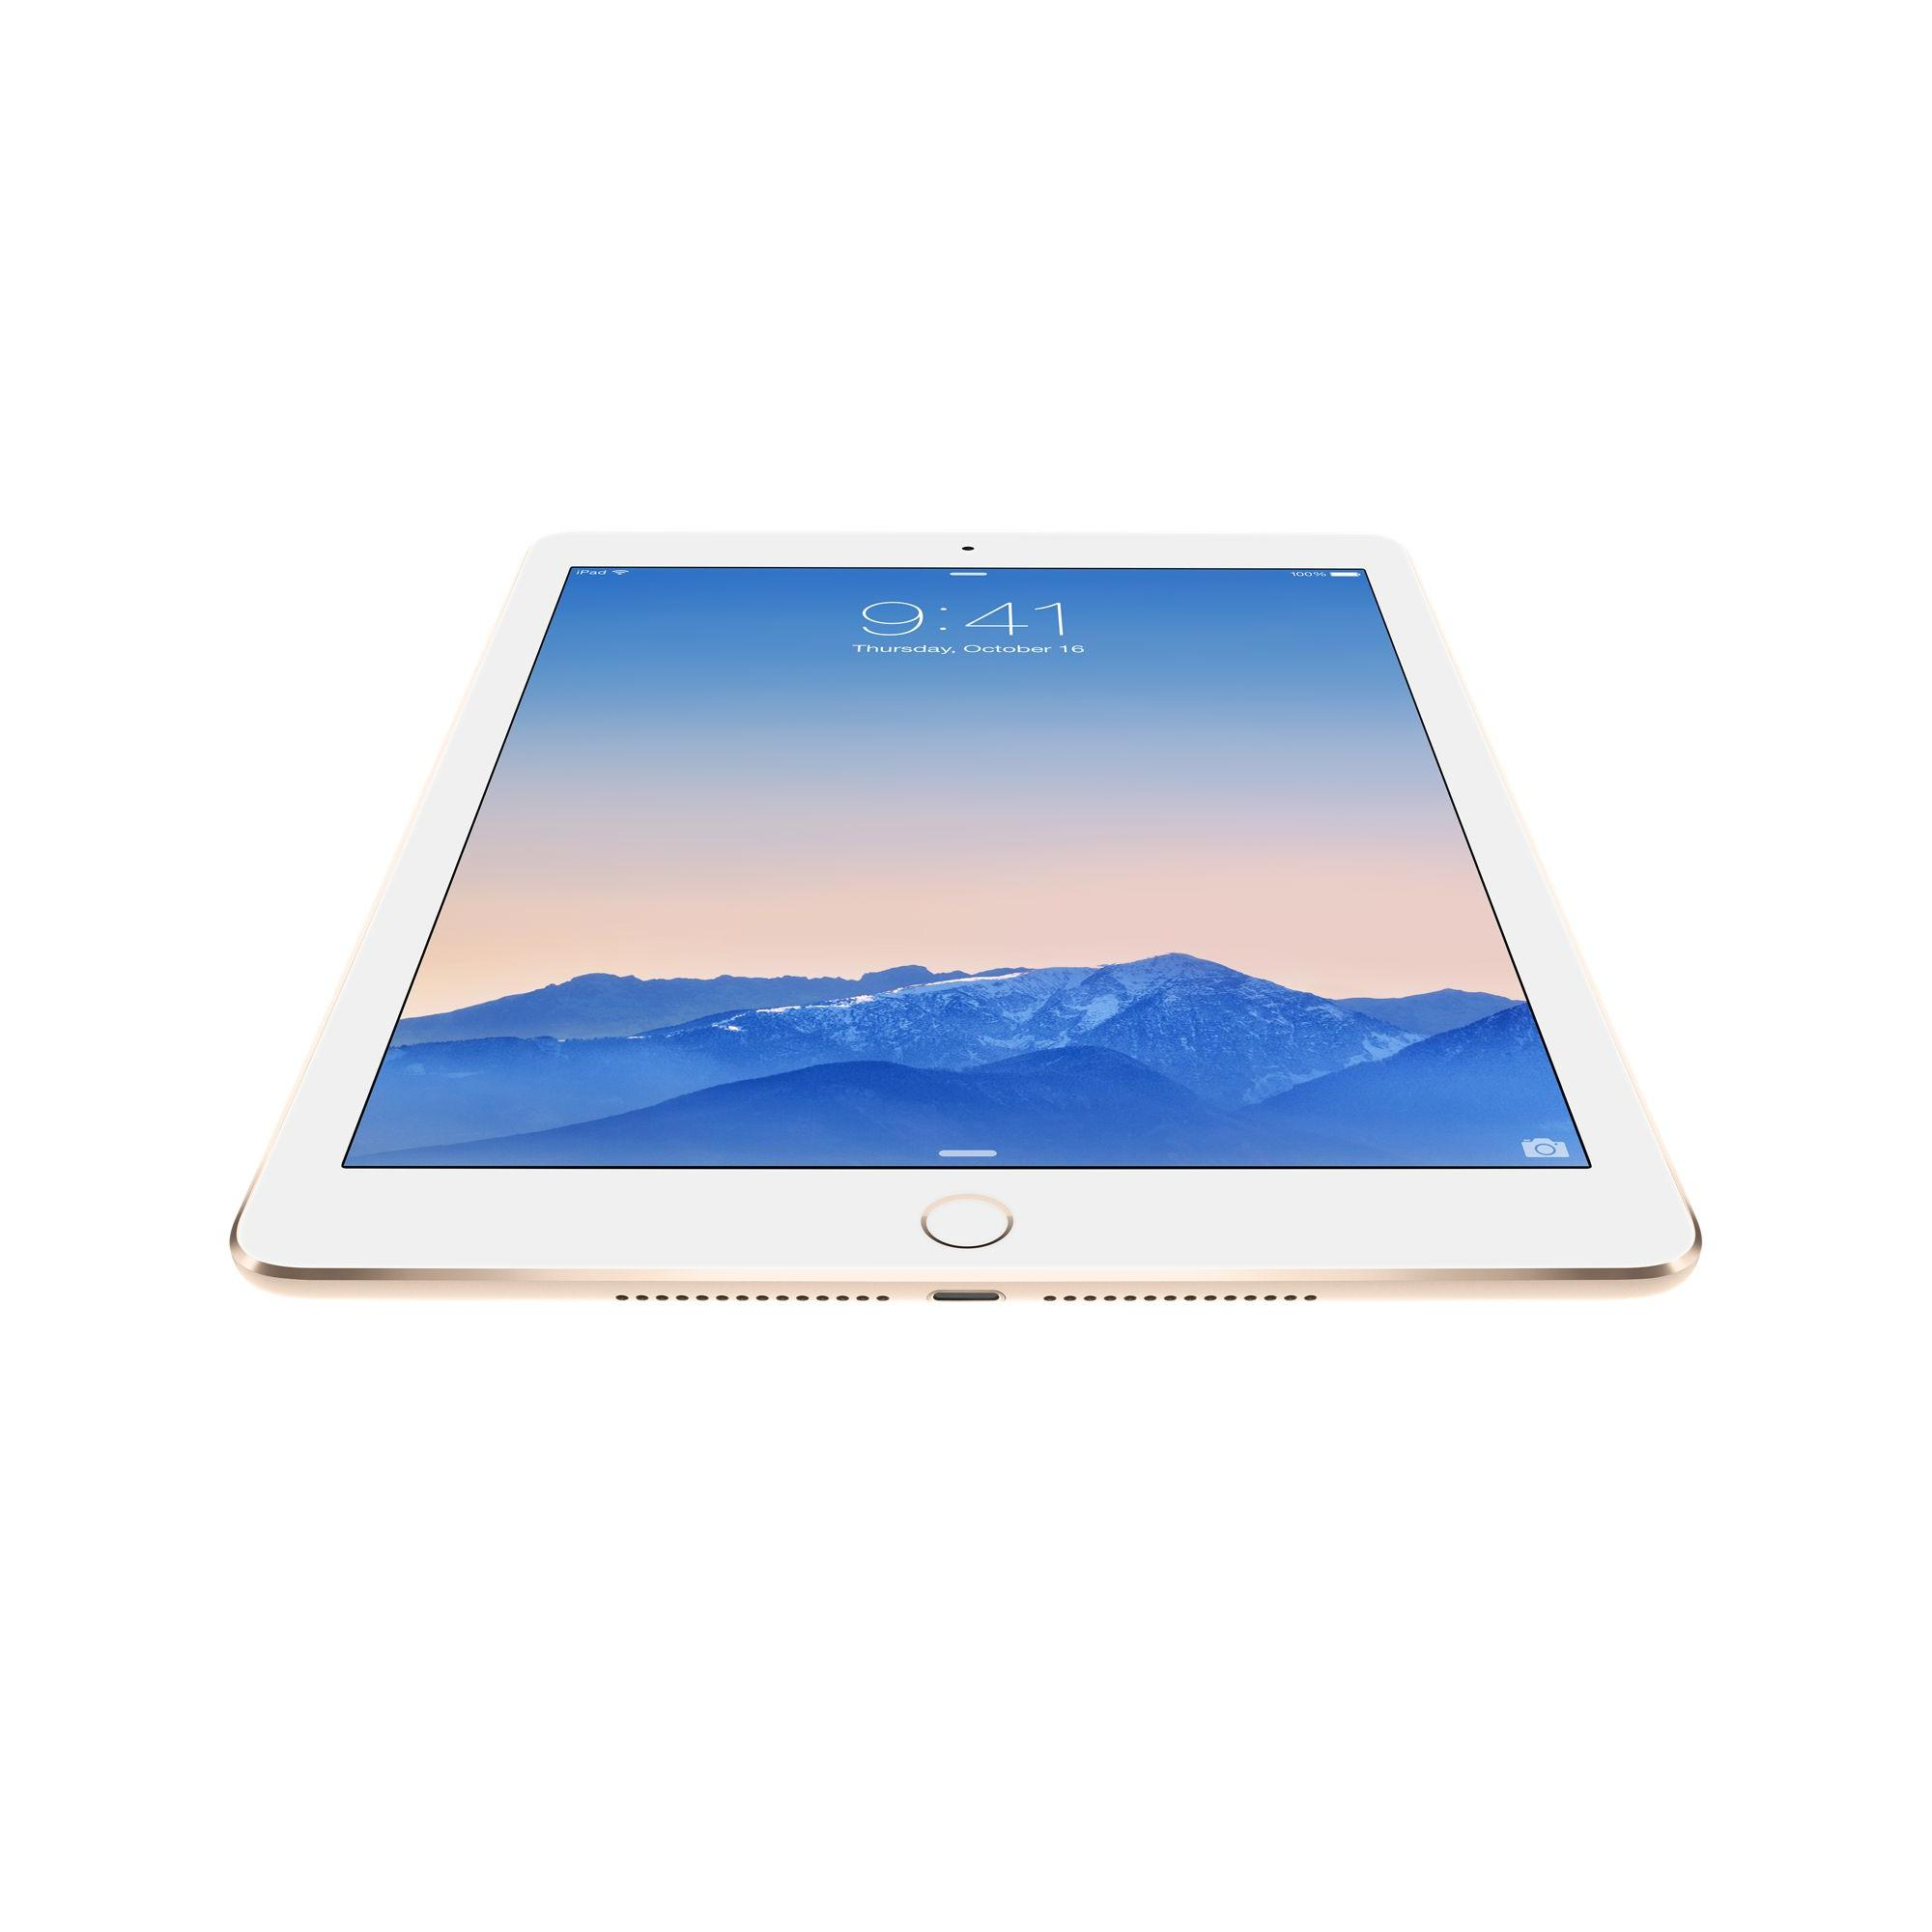 ipad air 2 64gb lte wlan gold ohne vertrag. Black Bedroom Furniture Sets. Home Design Ideas